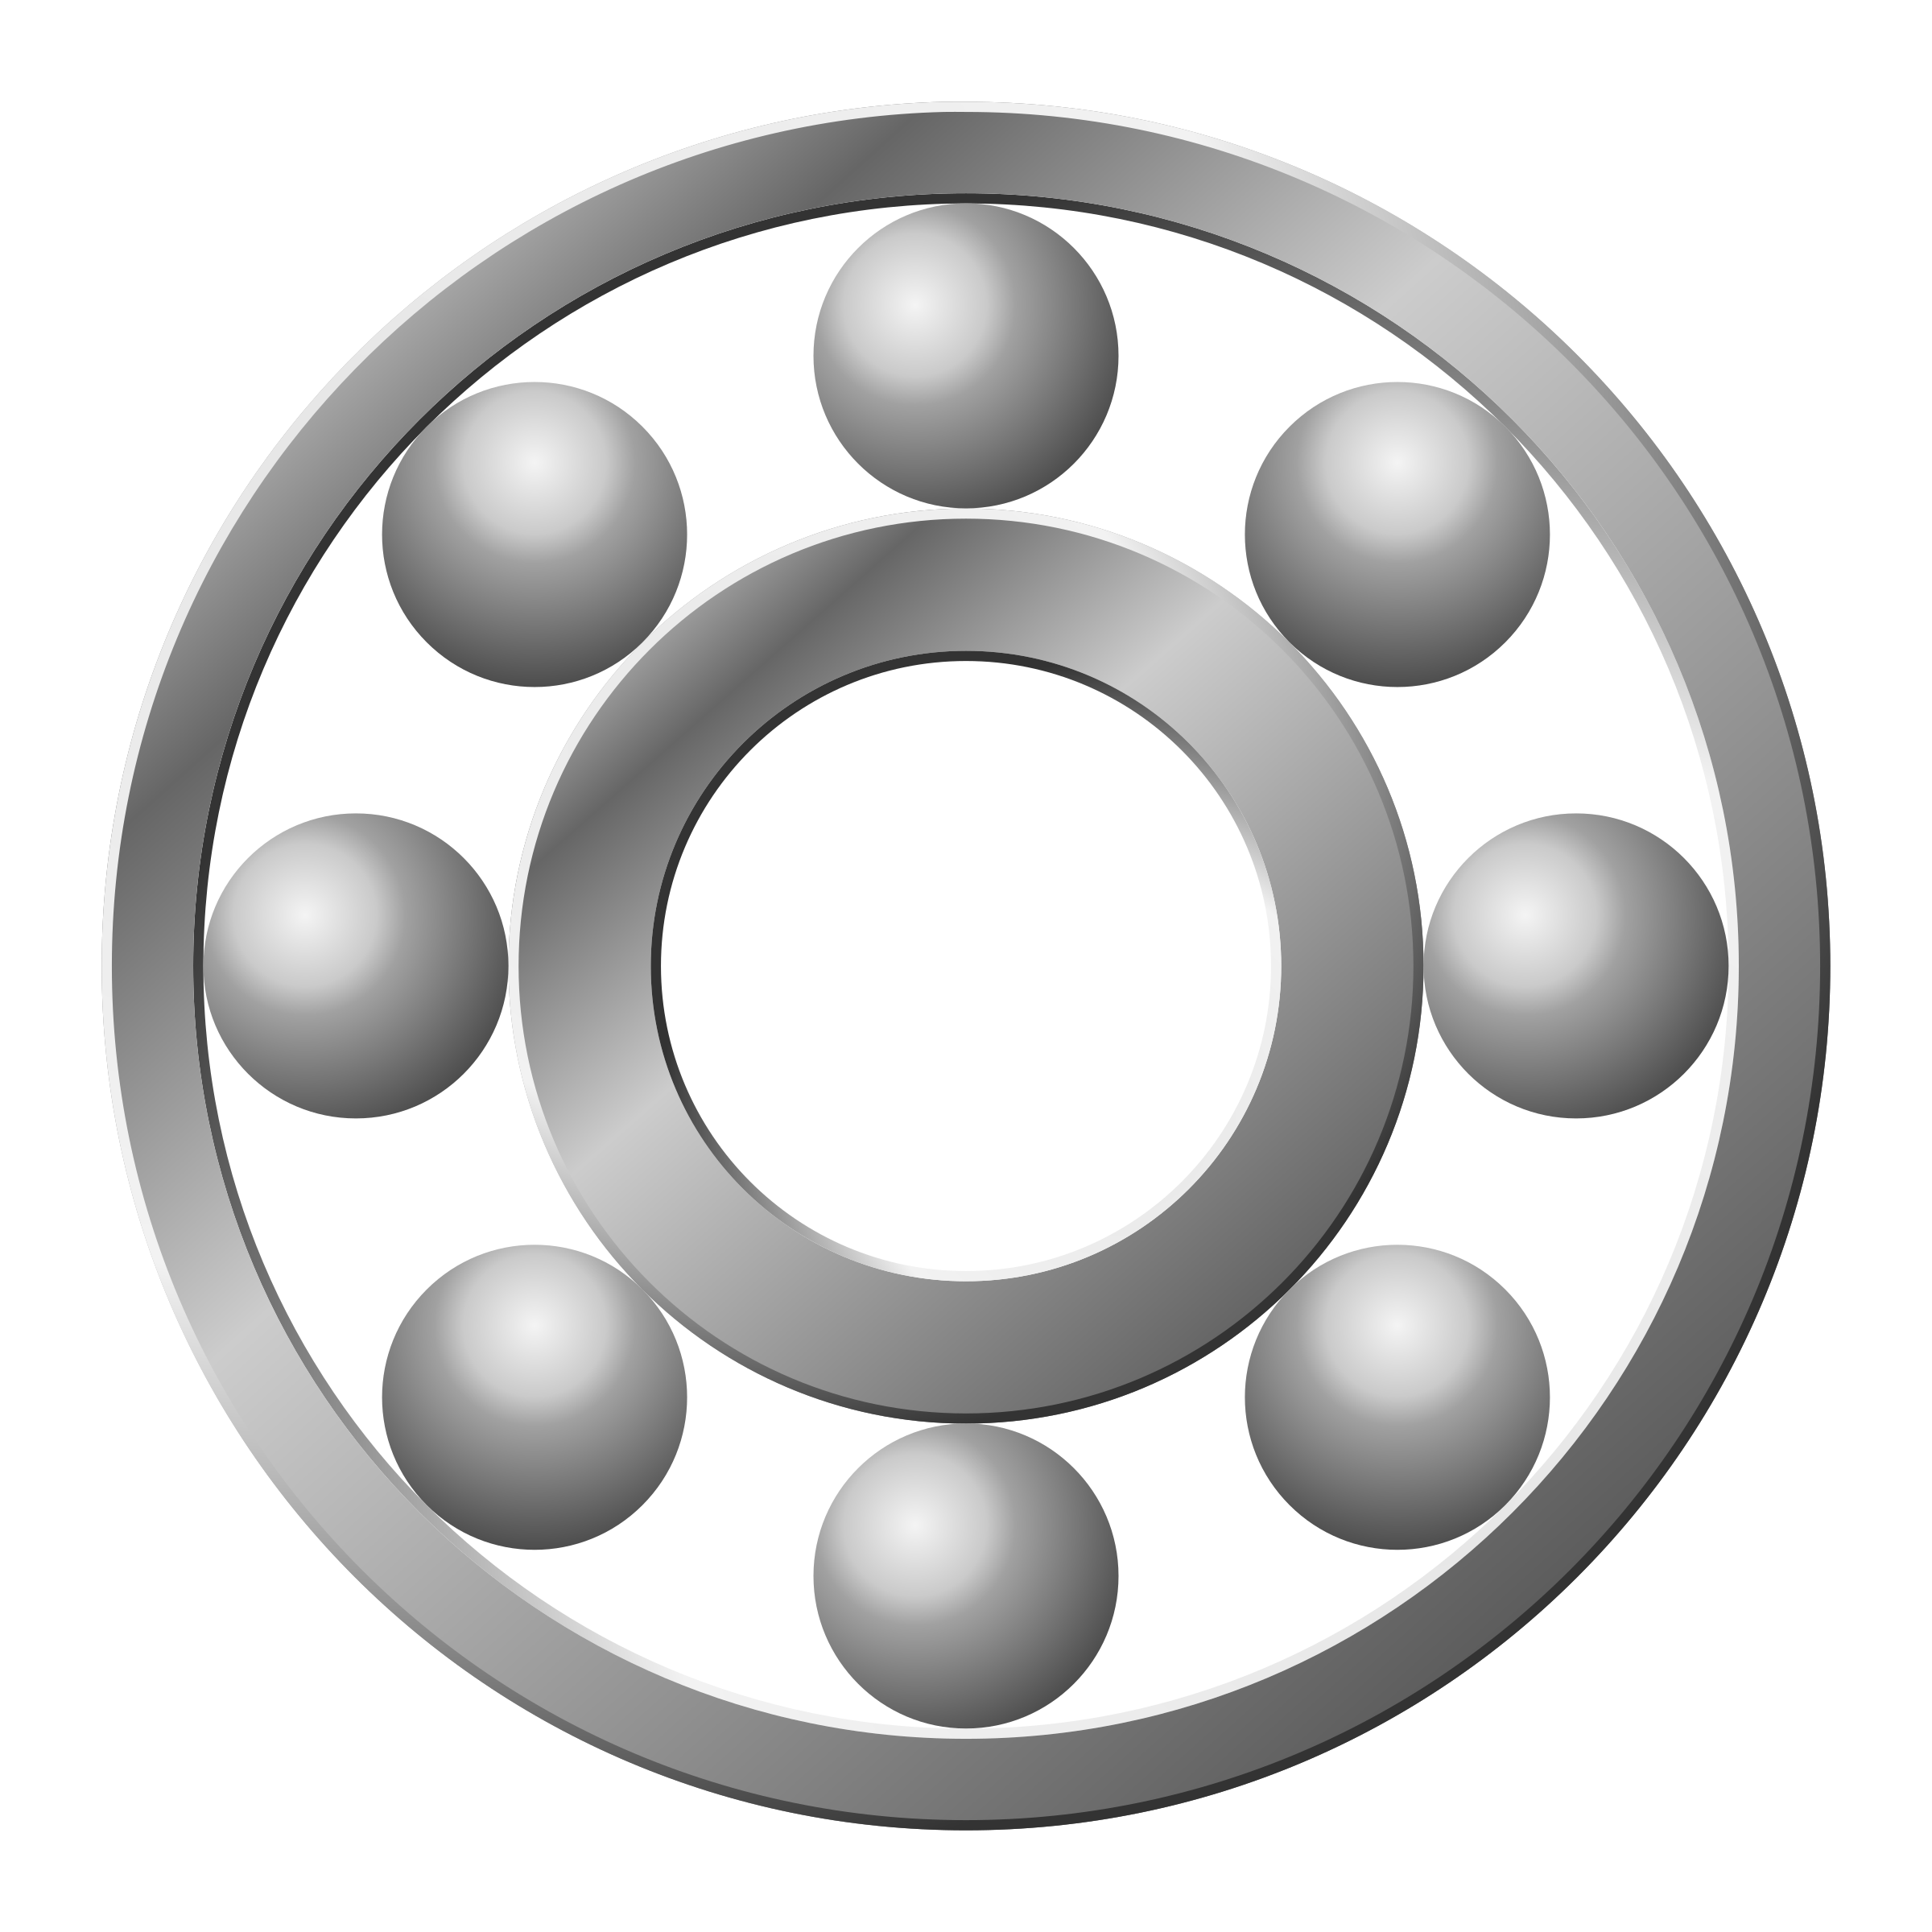 Ball bearing by jhnri4